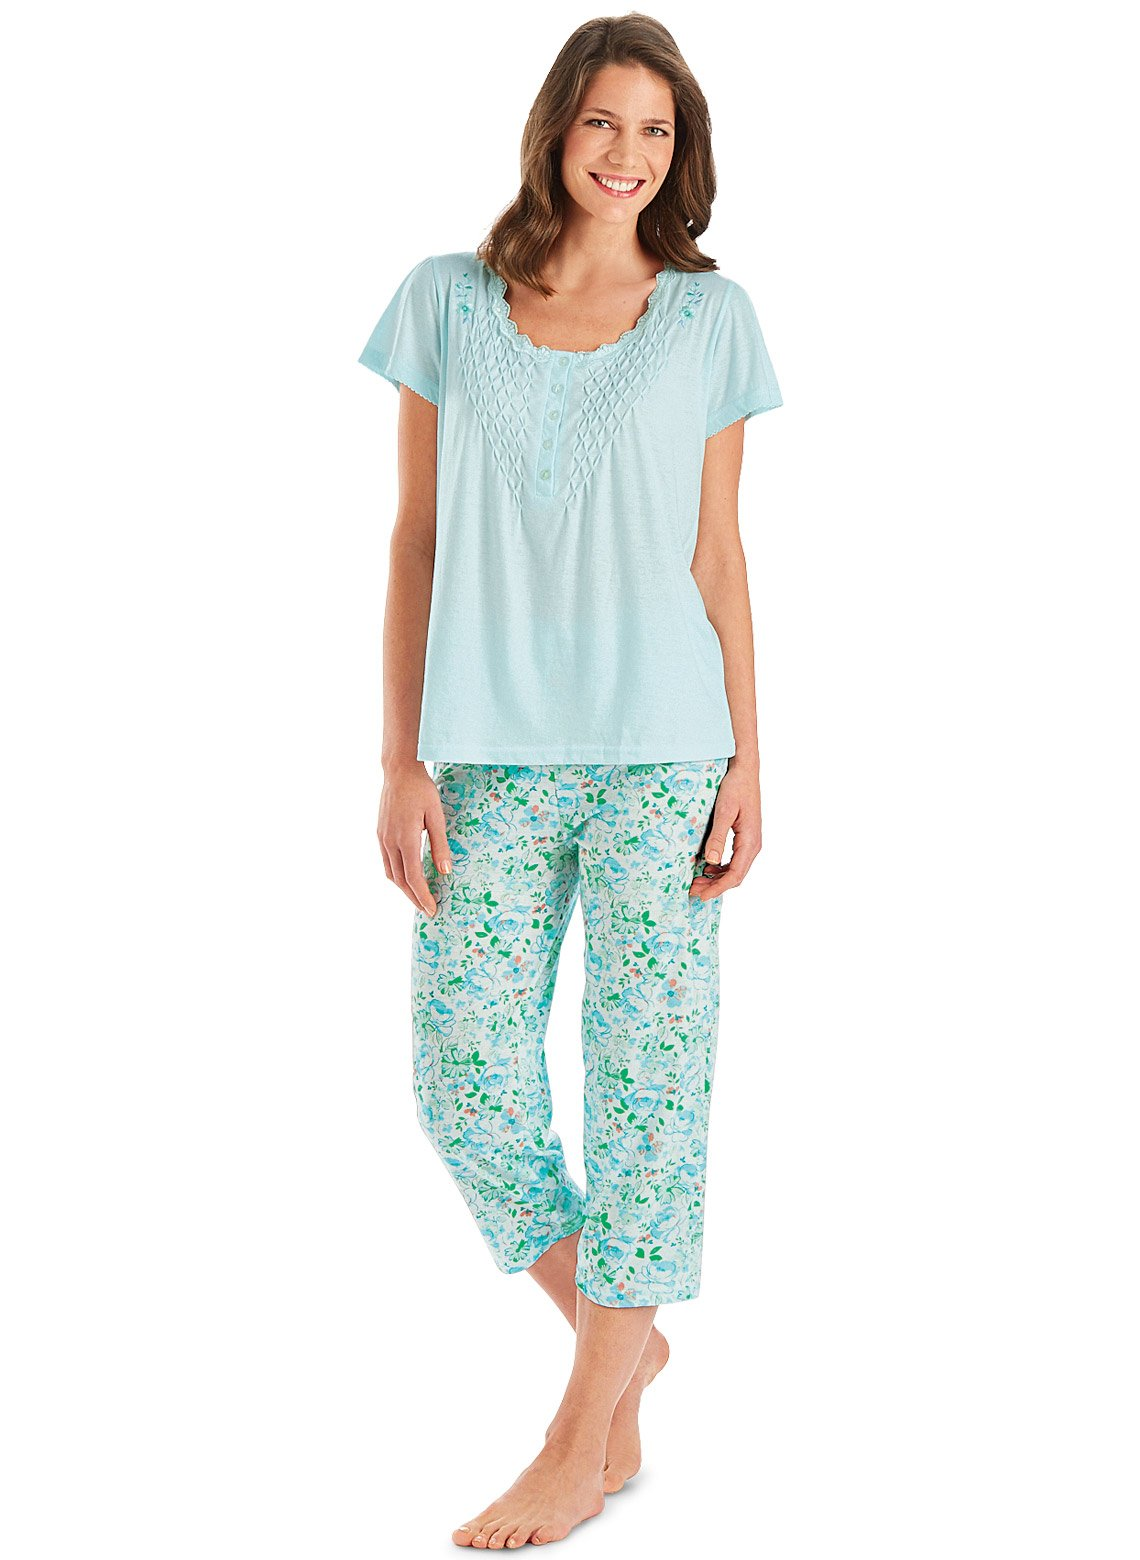 Carol Wright Gifts Pajama Set for Women with Capris - Short Sleeve Sleepwear Pjs Sets Available in Small to 4XL